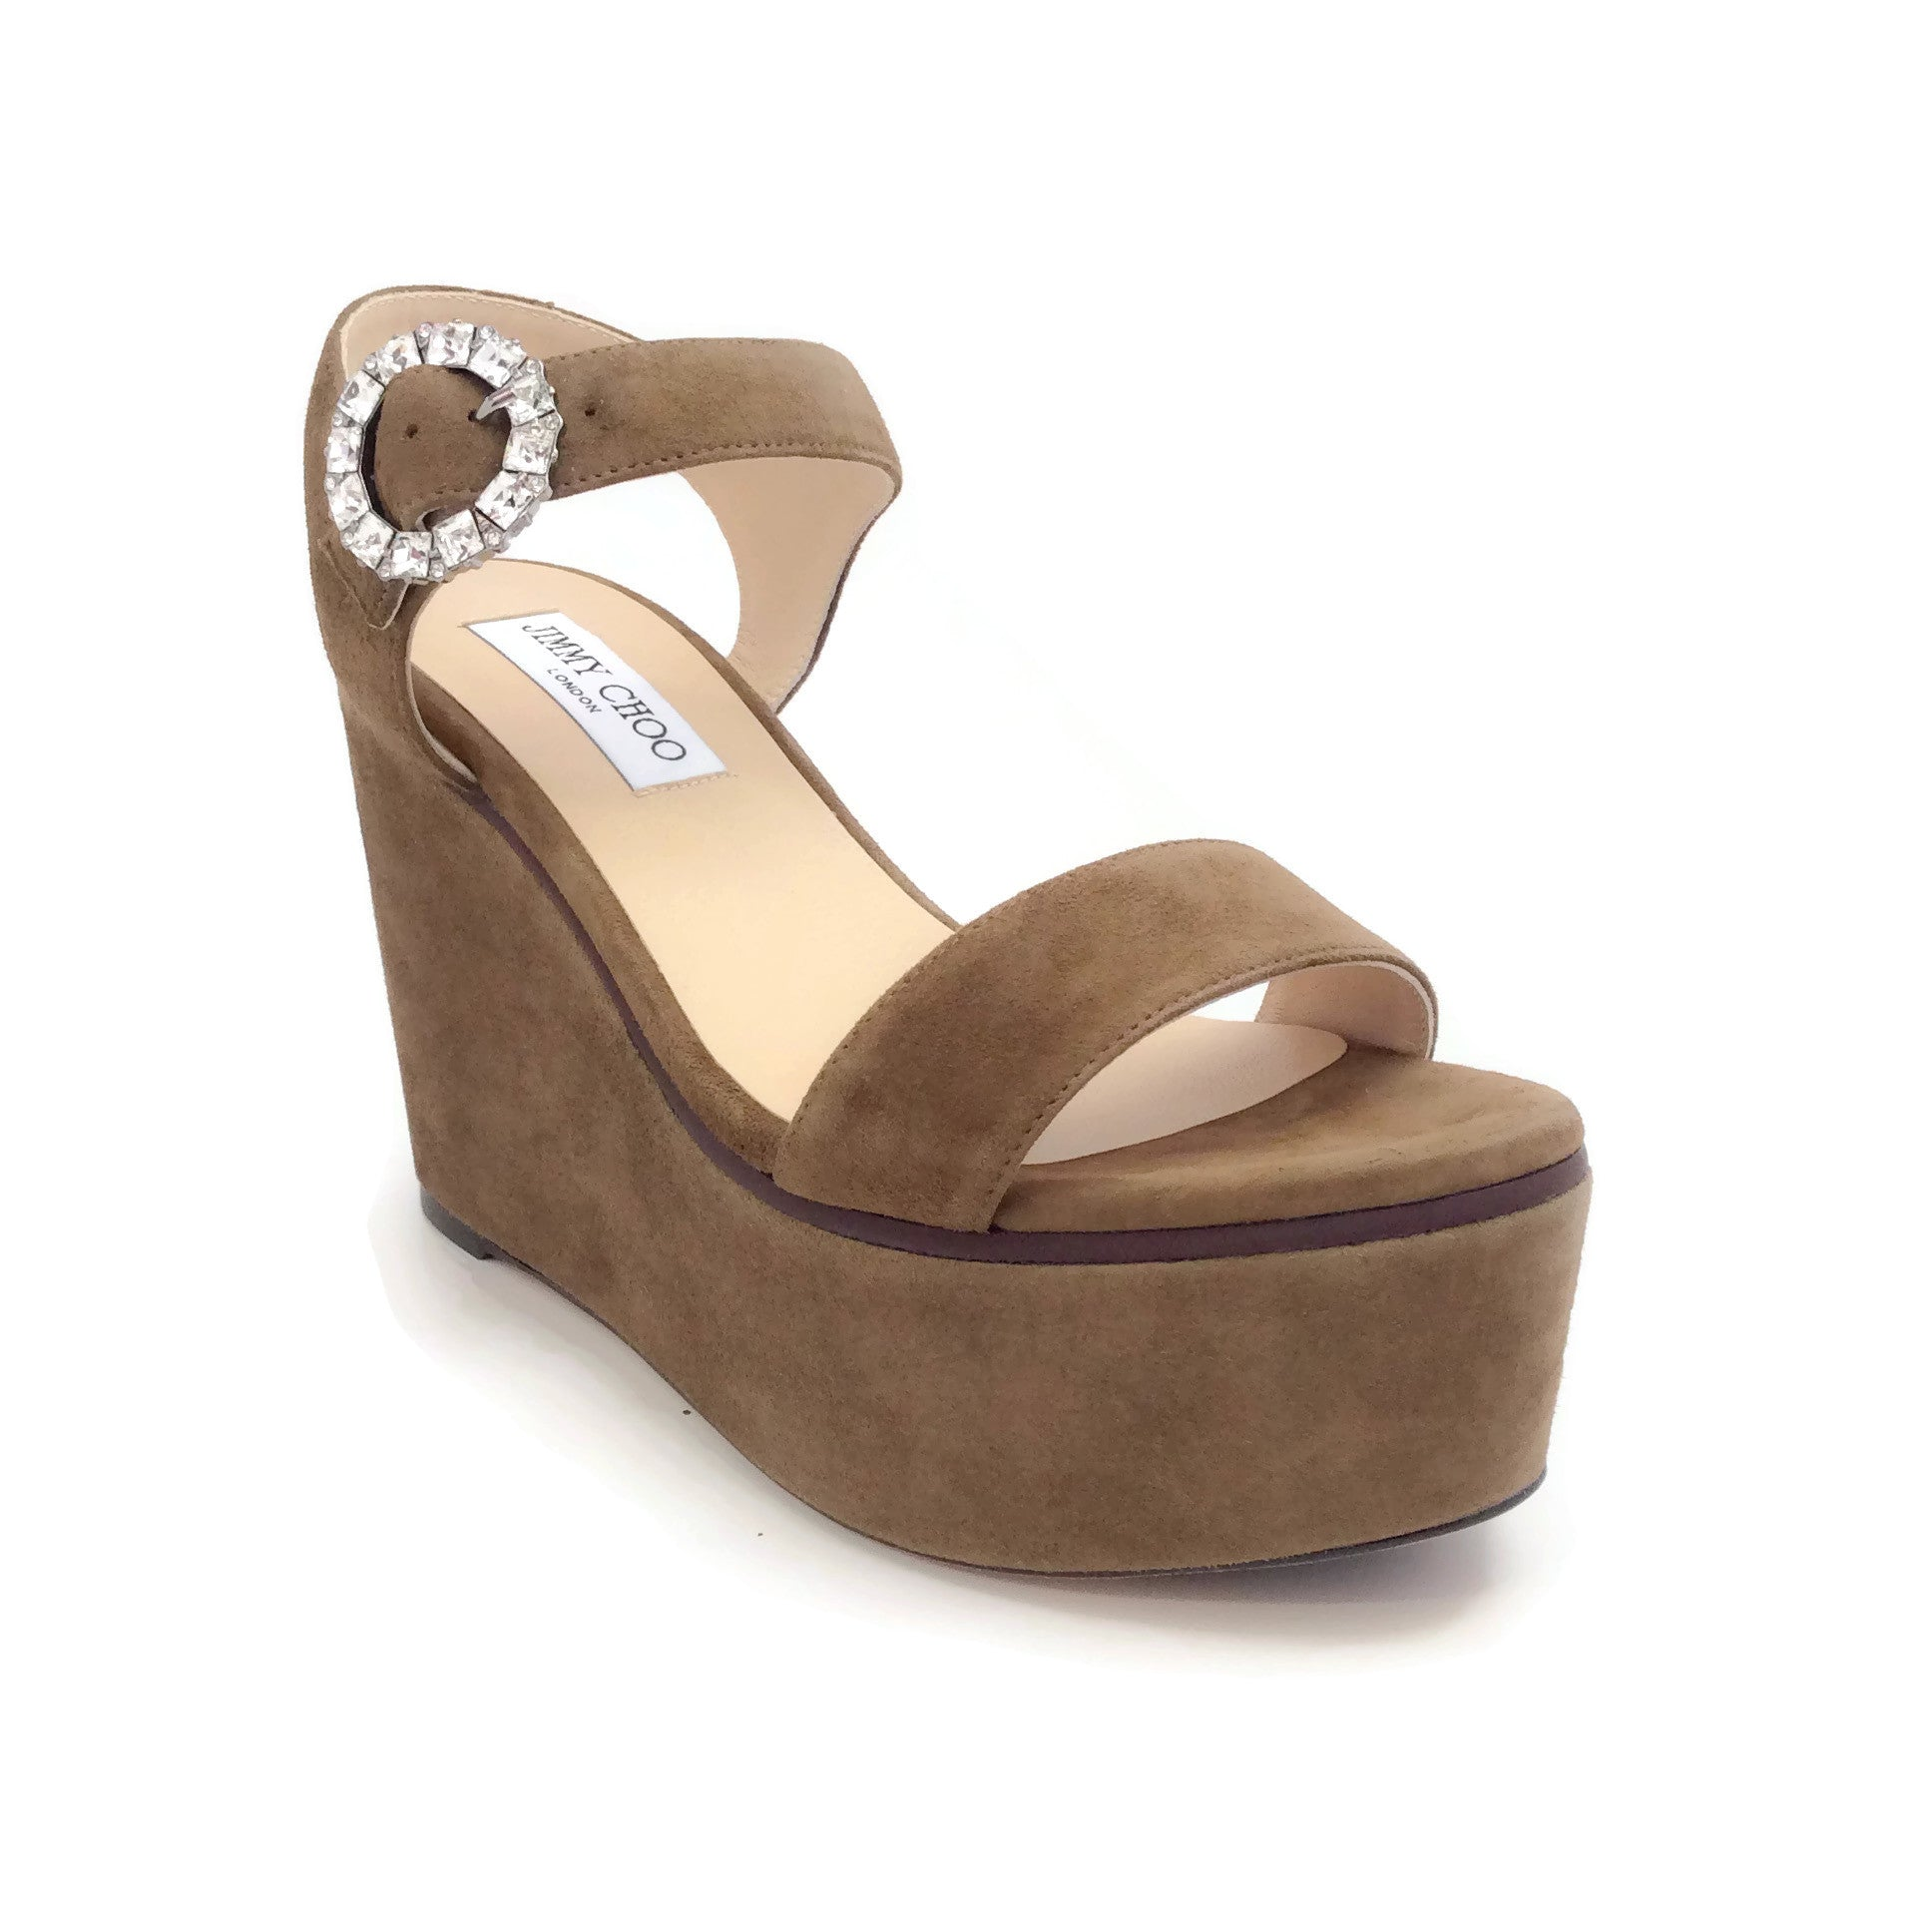 Jimmy Choo Olive Nylah Suede Wedge Sandals